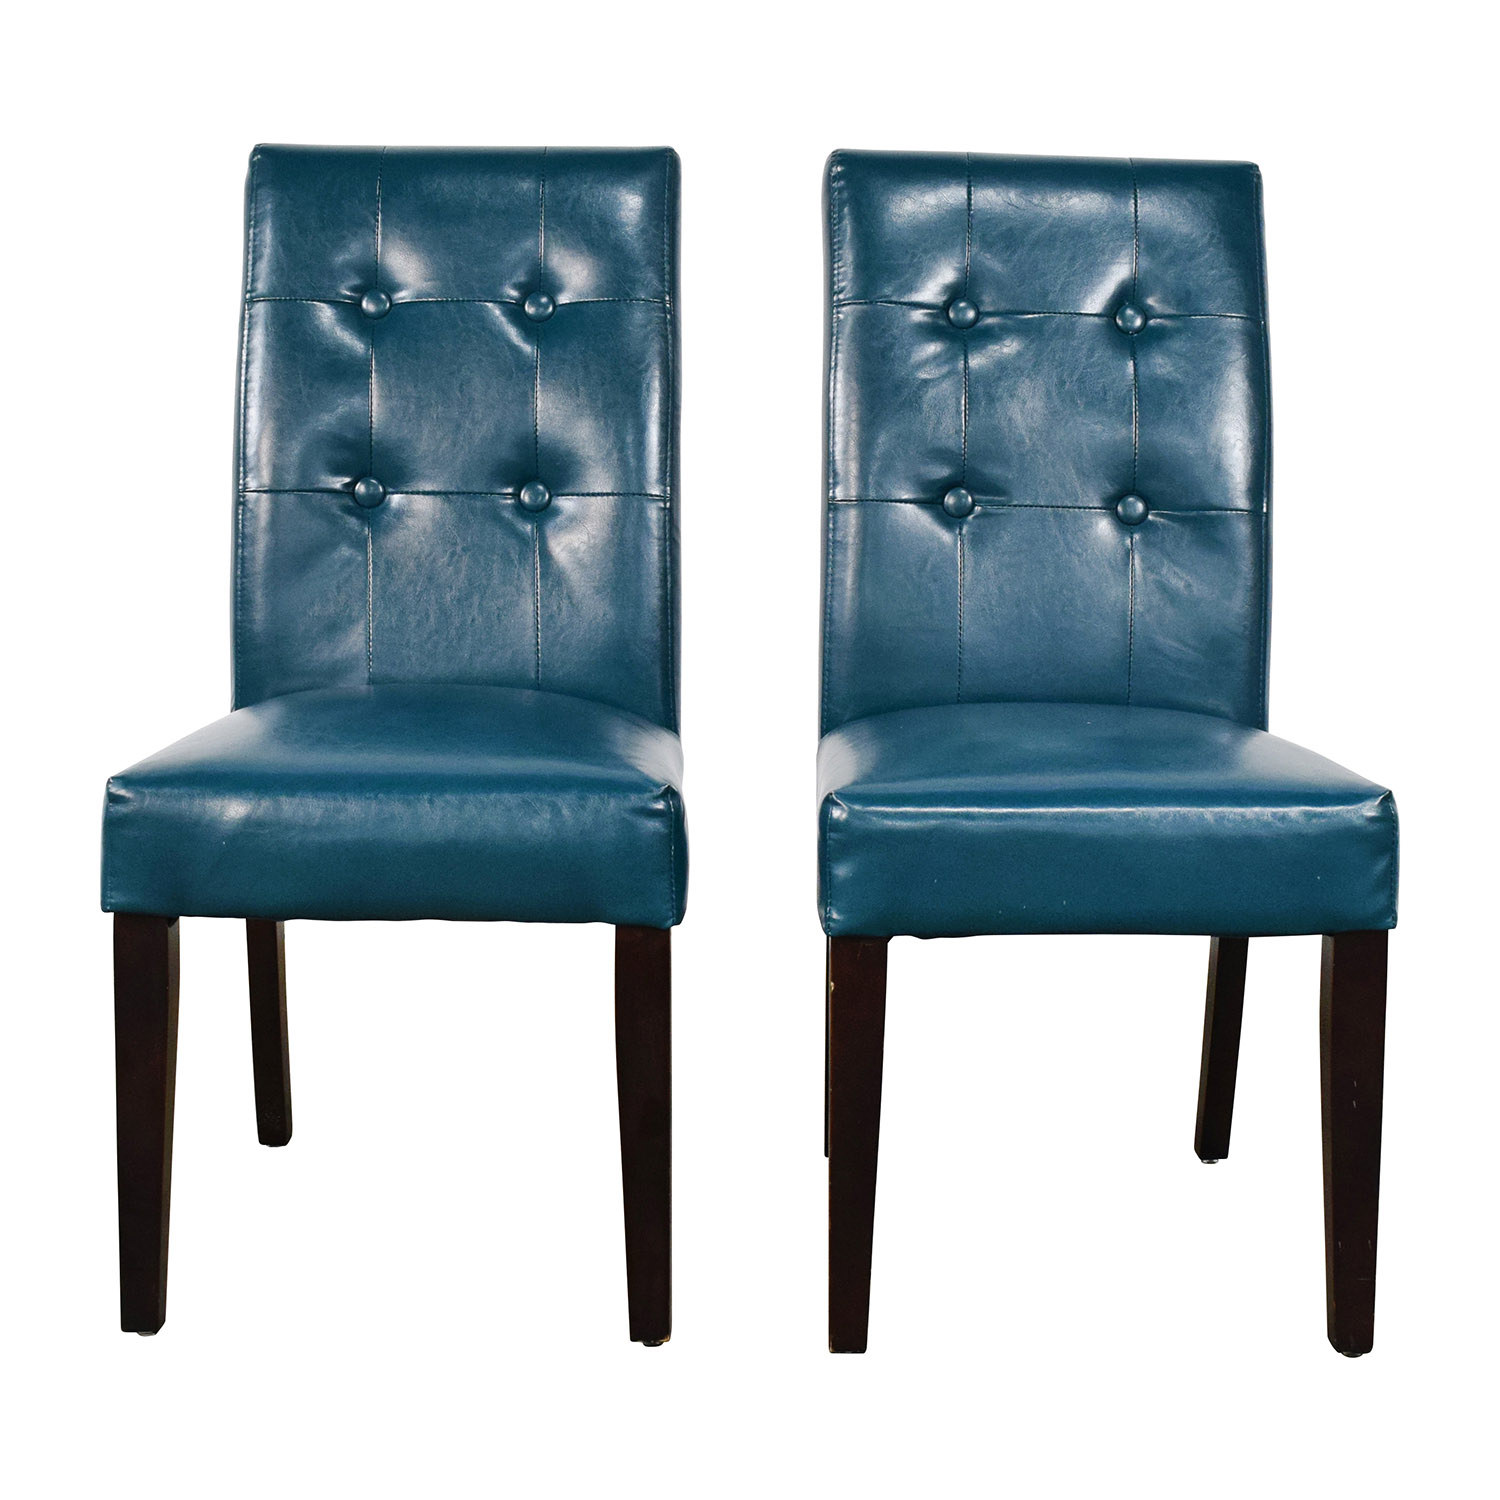 pier 1 dining chairs 76% OFF   Pier 1 Imports Pier 1 Imports Mason Collection Teal  pier 1 dining chairs